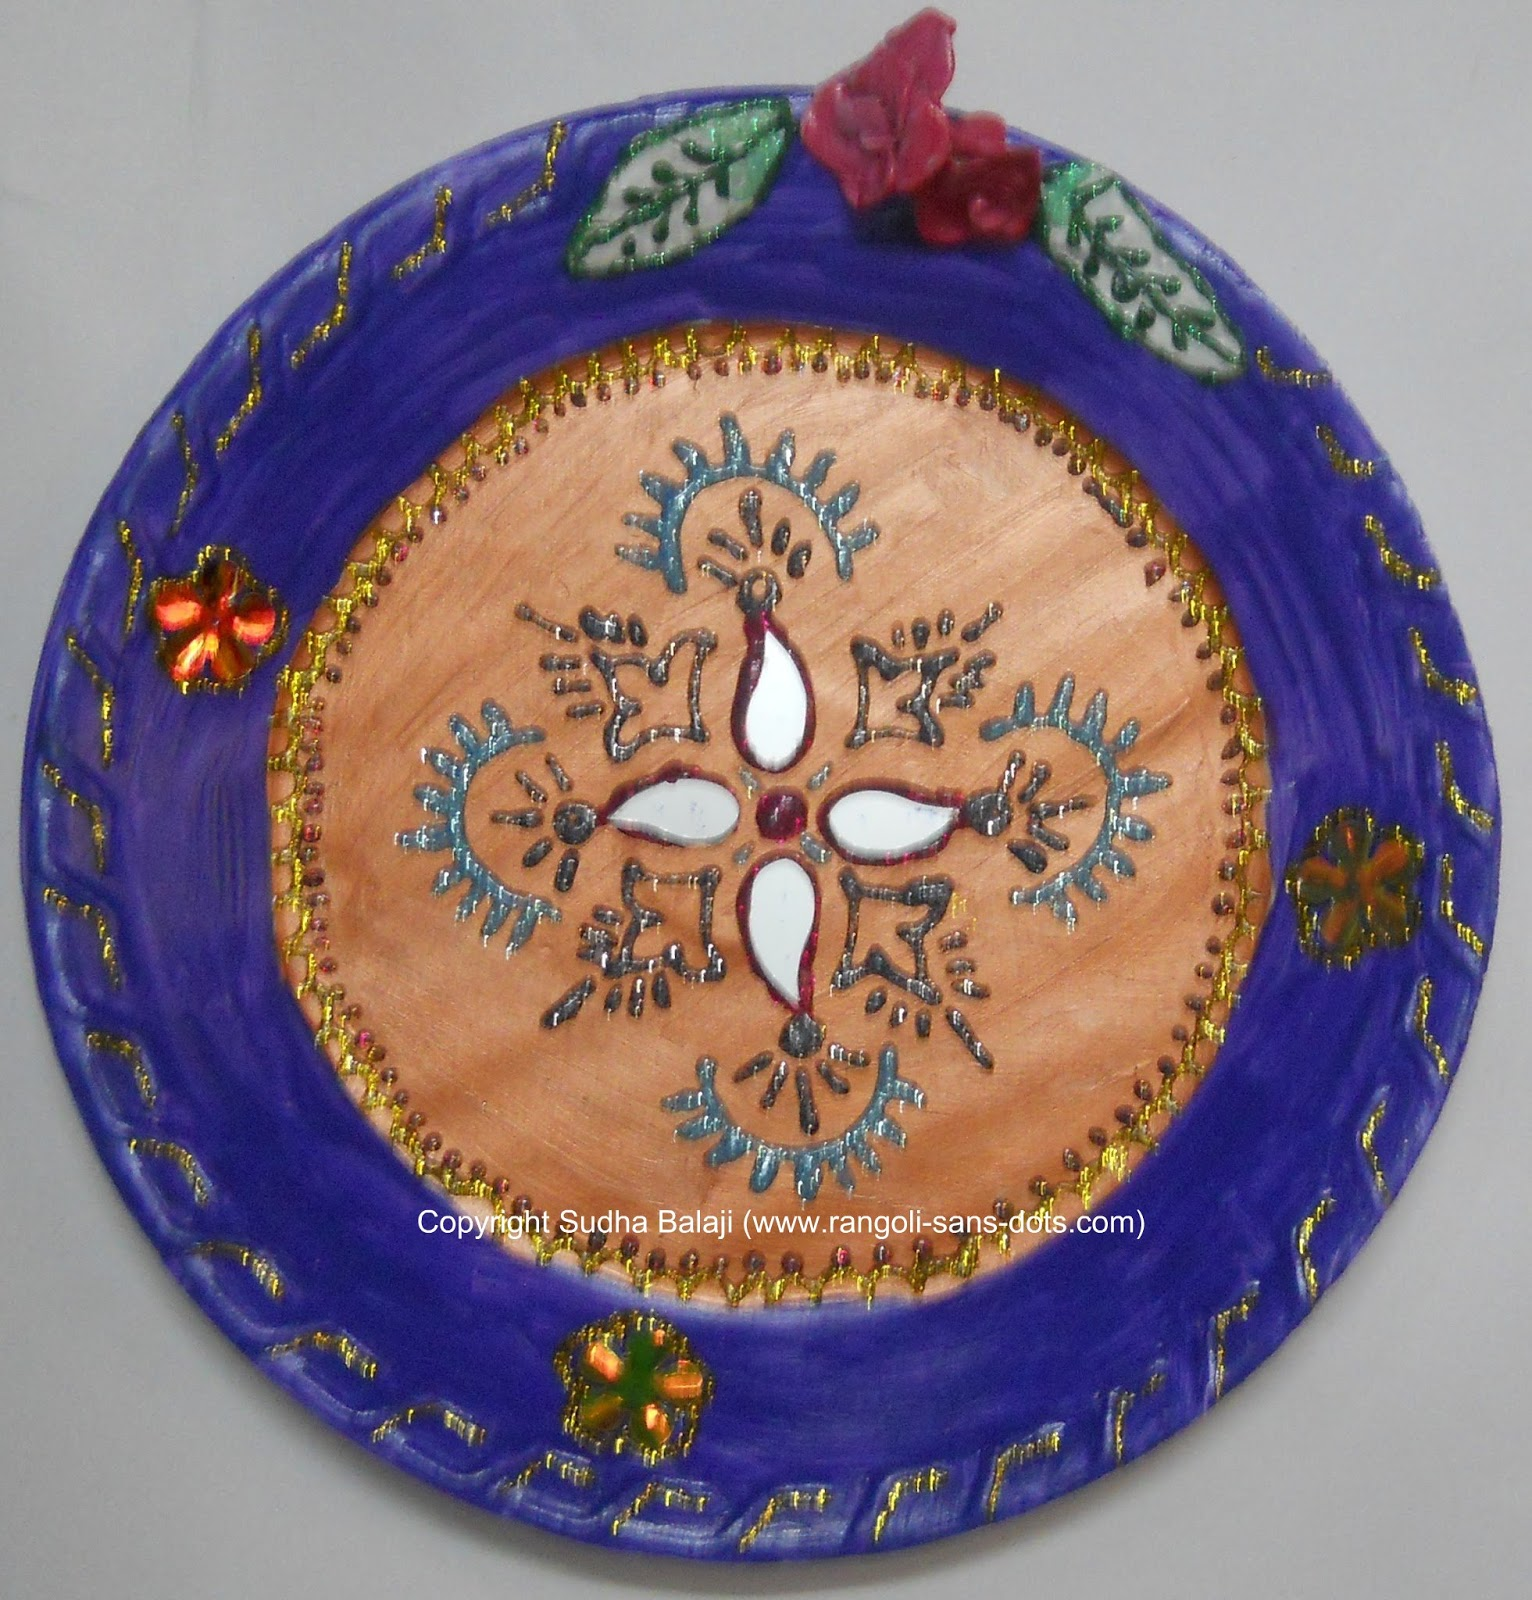 Pin decorative aarthi plates satin ribbon garland on pinterest for Aarthi plates decoration